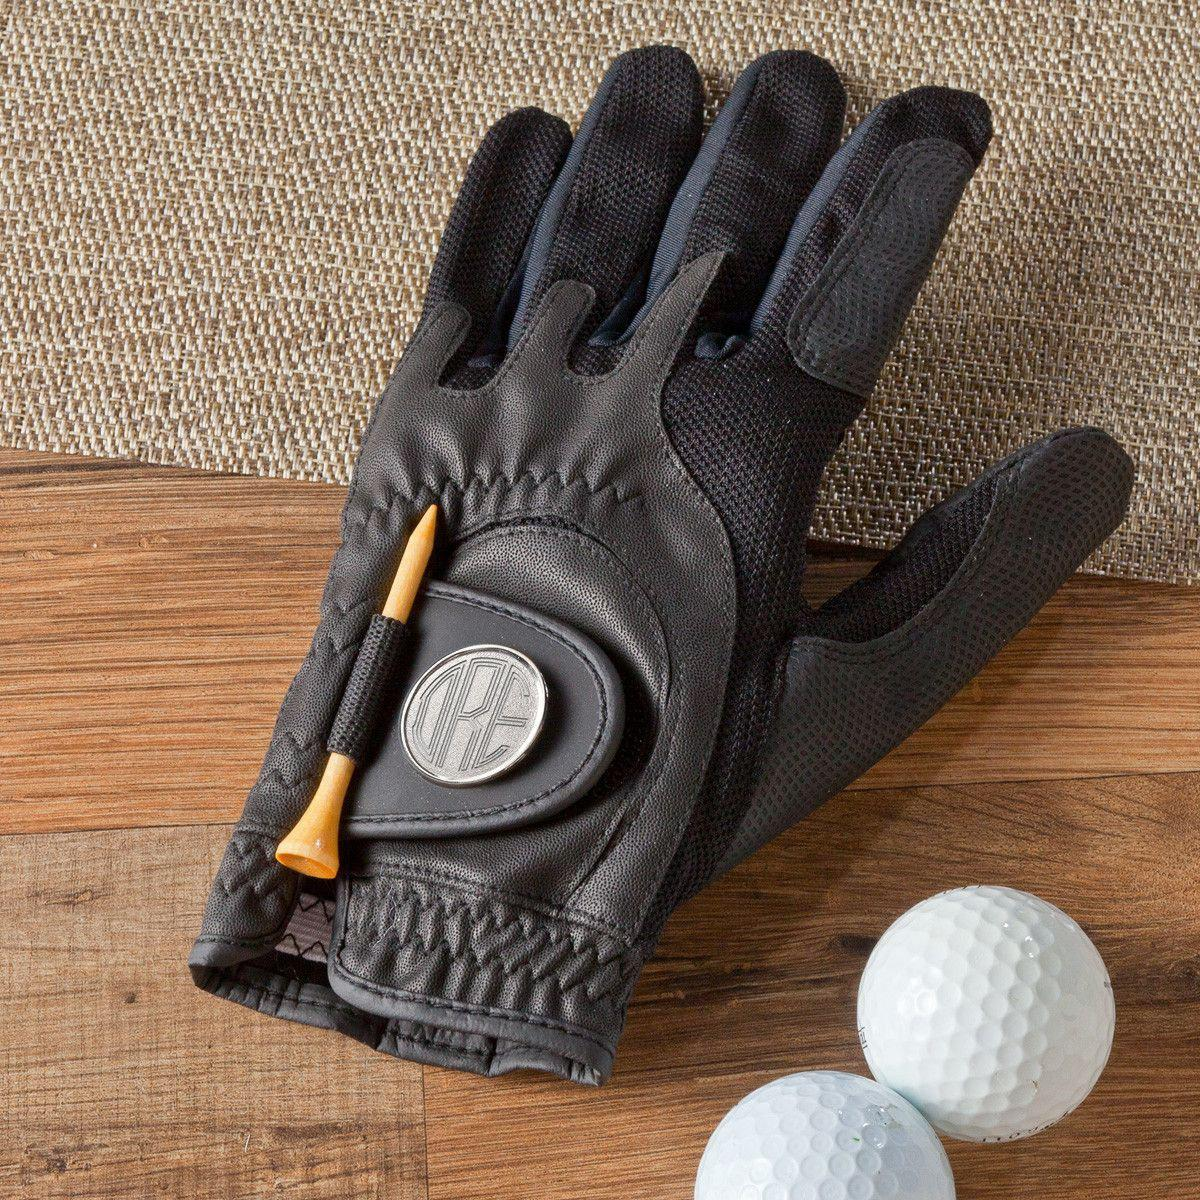 Personalized-Golf-Glove-Leather-Magnetic-Ball-Marker-Groomsmen